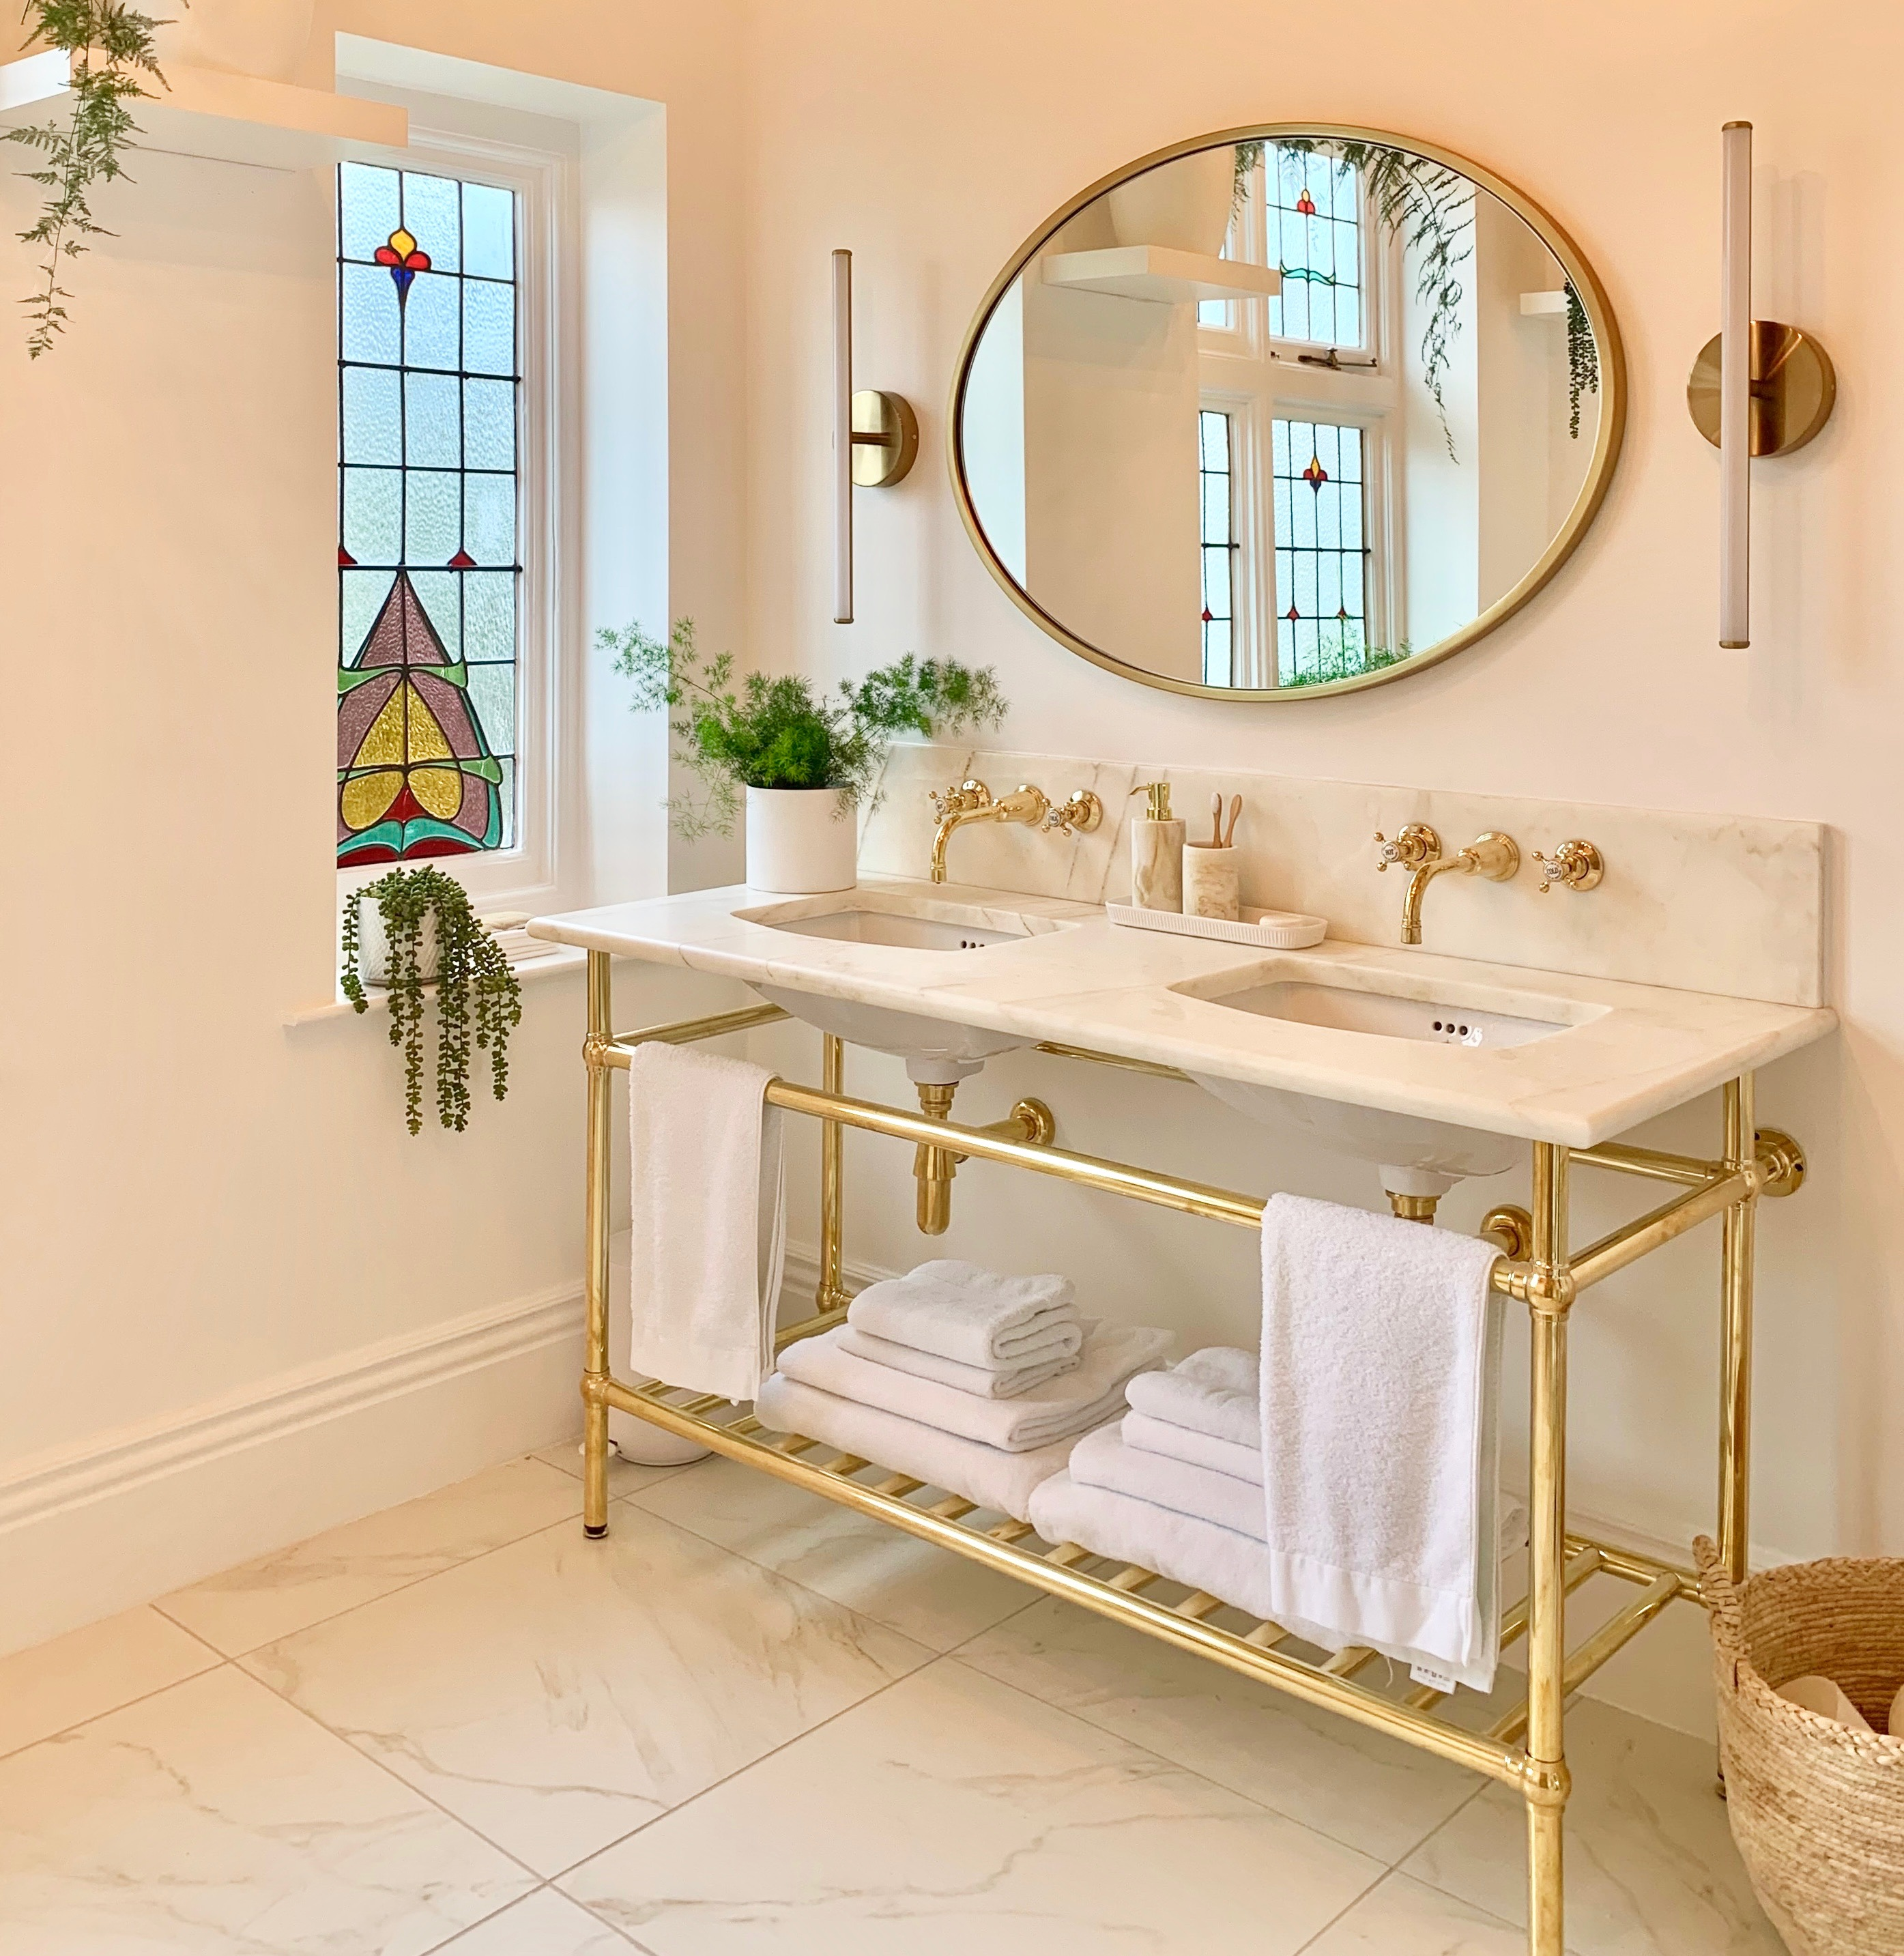 bathroom with marble floor tiles marble double vanity unit polisged brass basin taps bathroom mirror